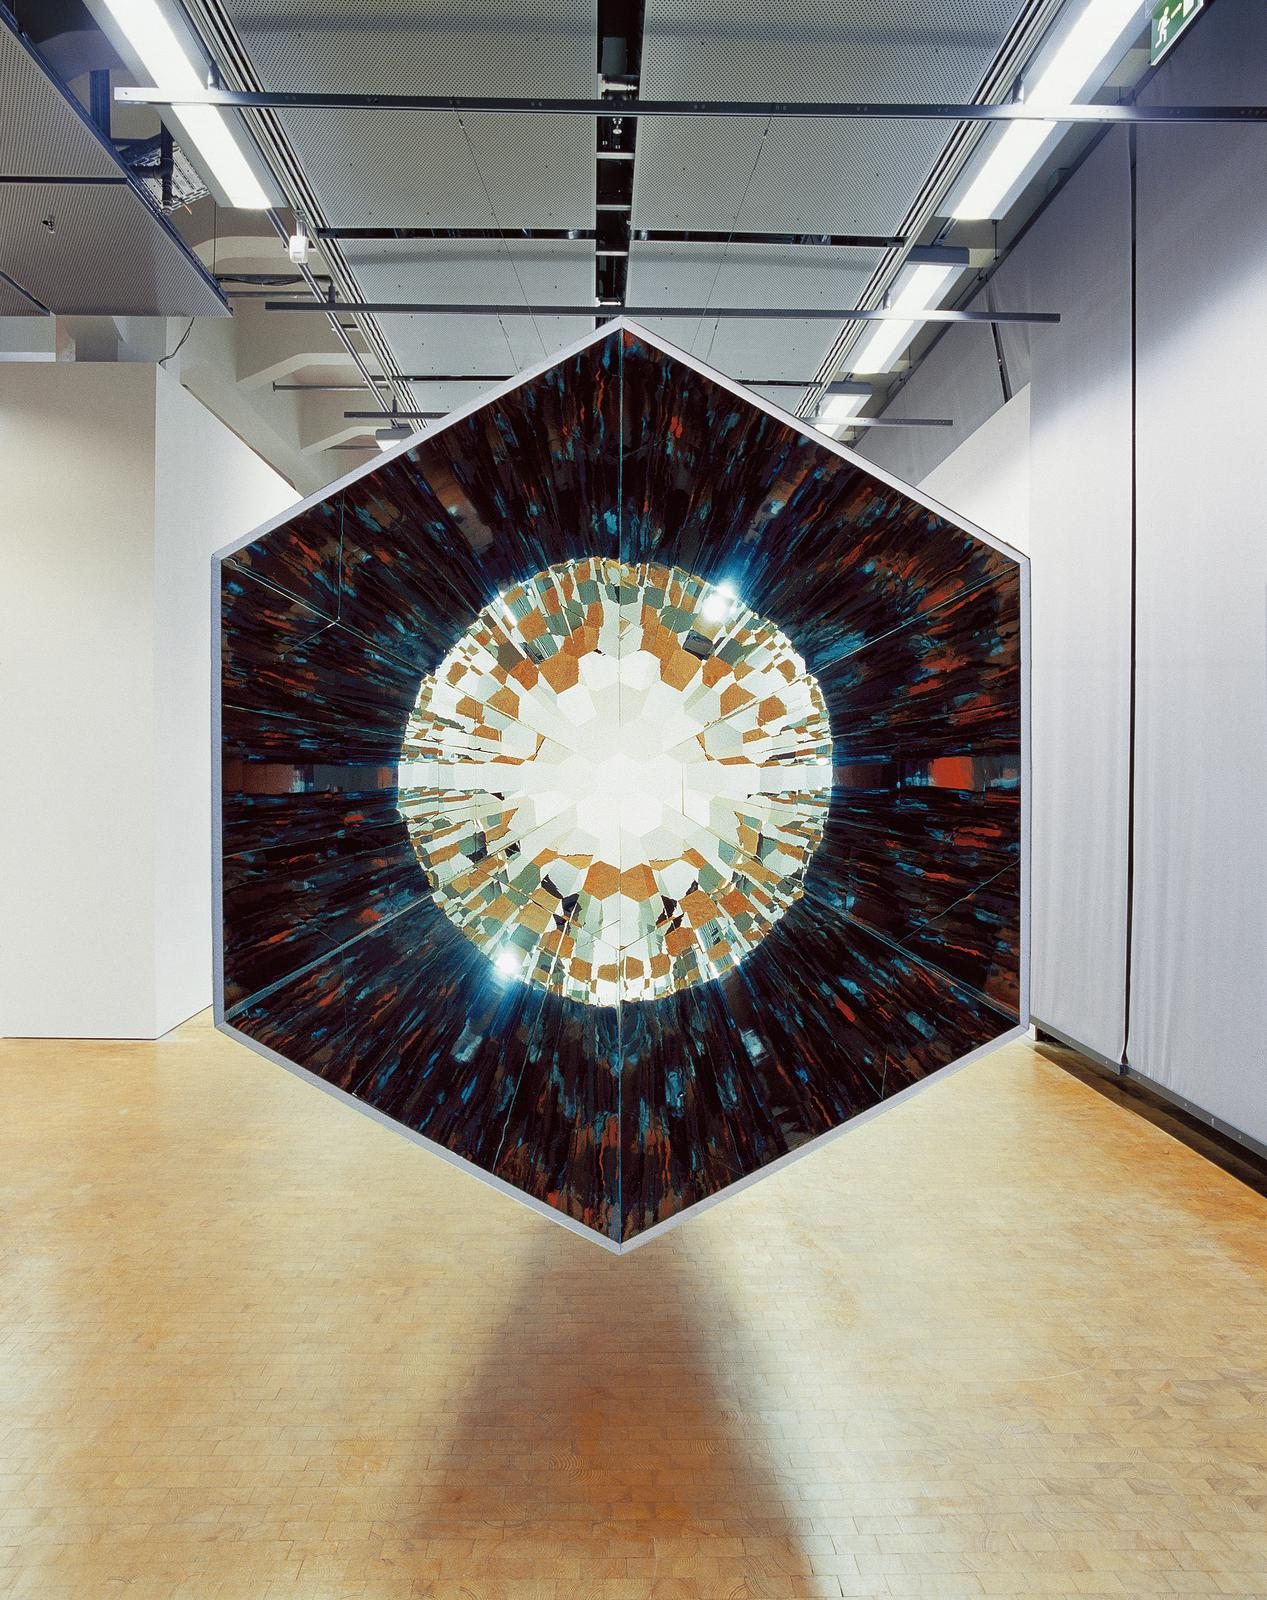 Kaleidoscope Artwork Studio Olafur Eliasson